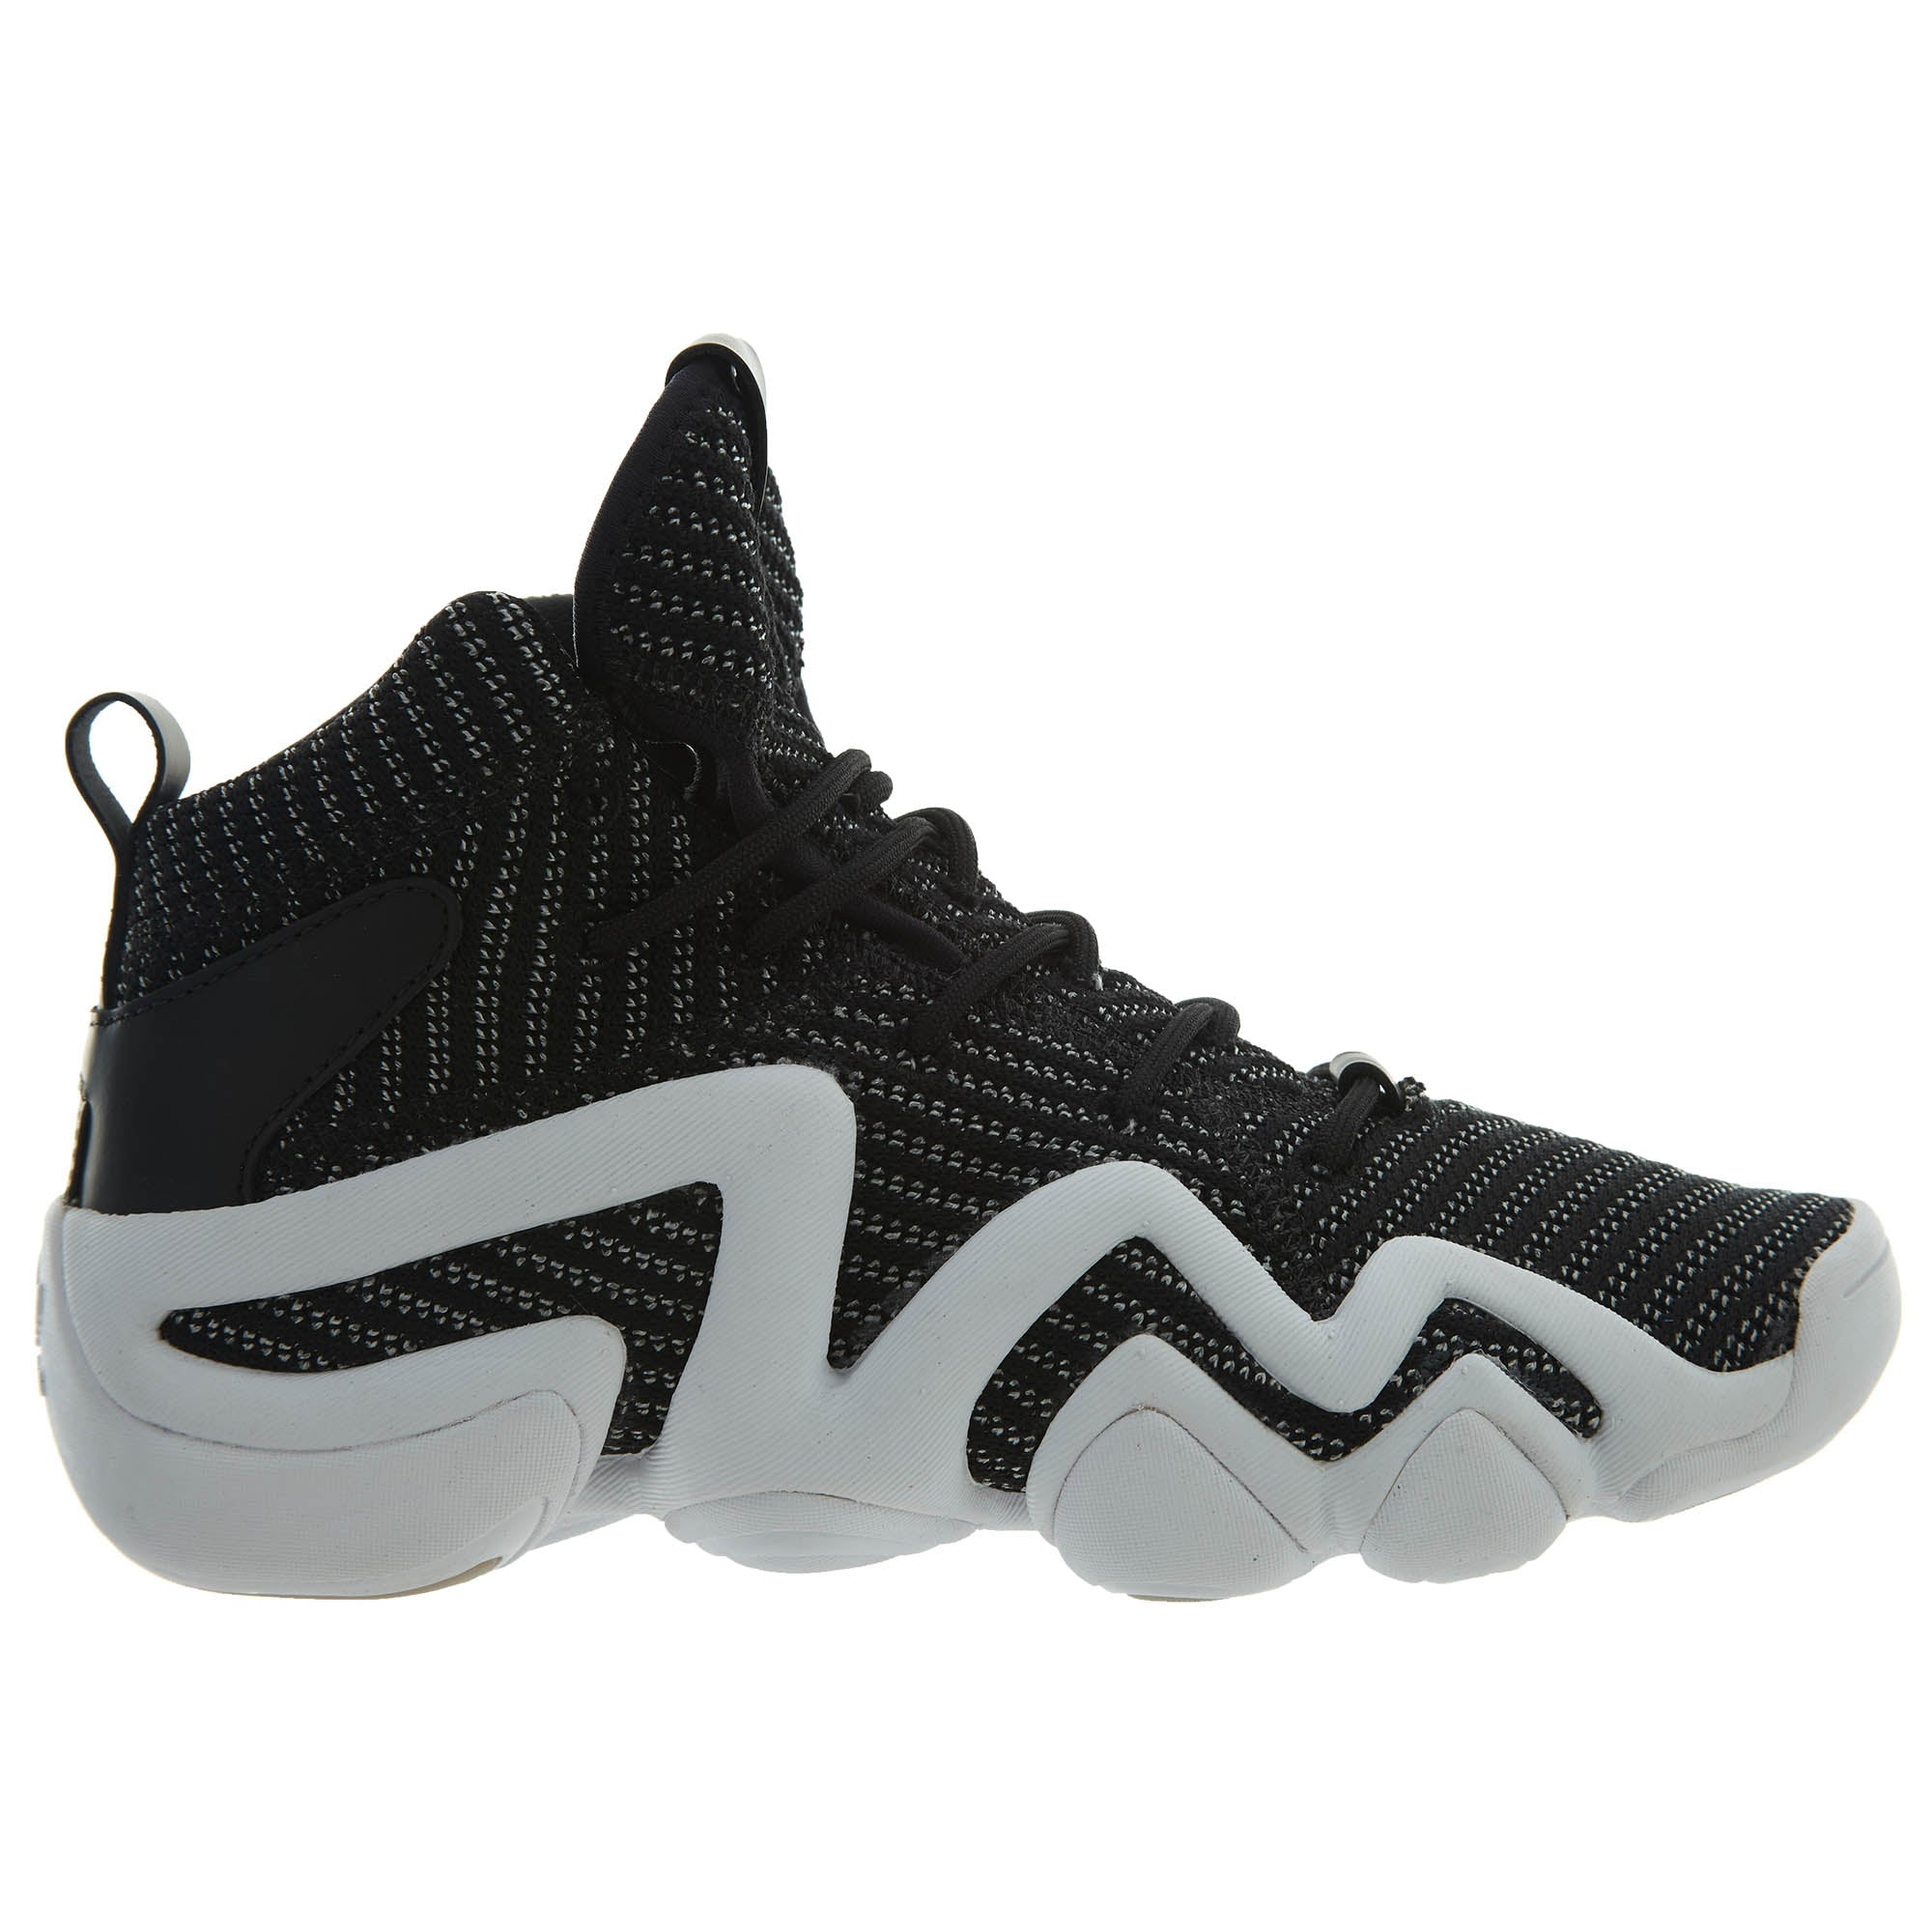 Adidas Crazy 8 Adv Primeknit Sneaker Mens Style : By4423